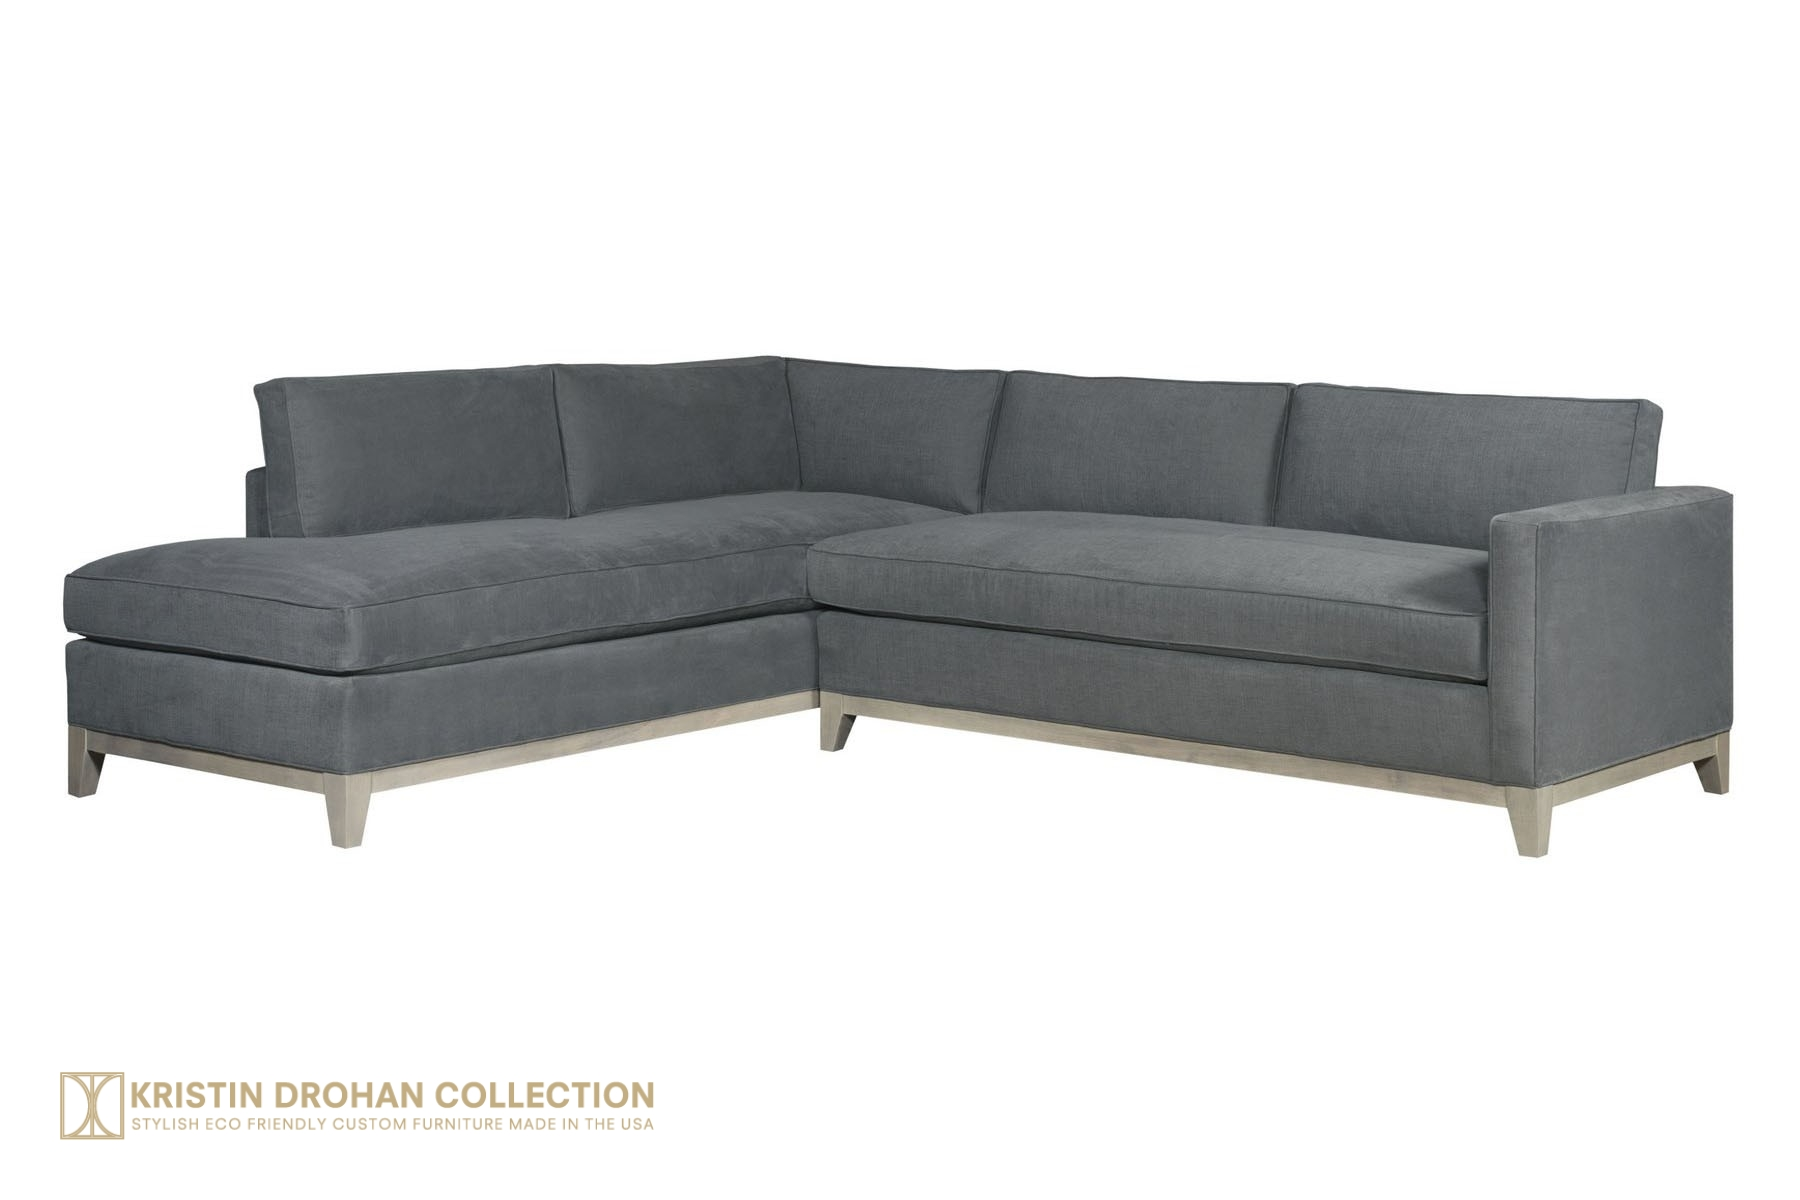 Keegan Designer Sectional Sofa Kristin Drohan Collection